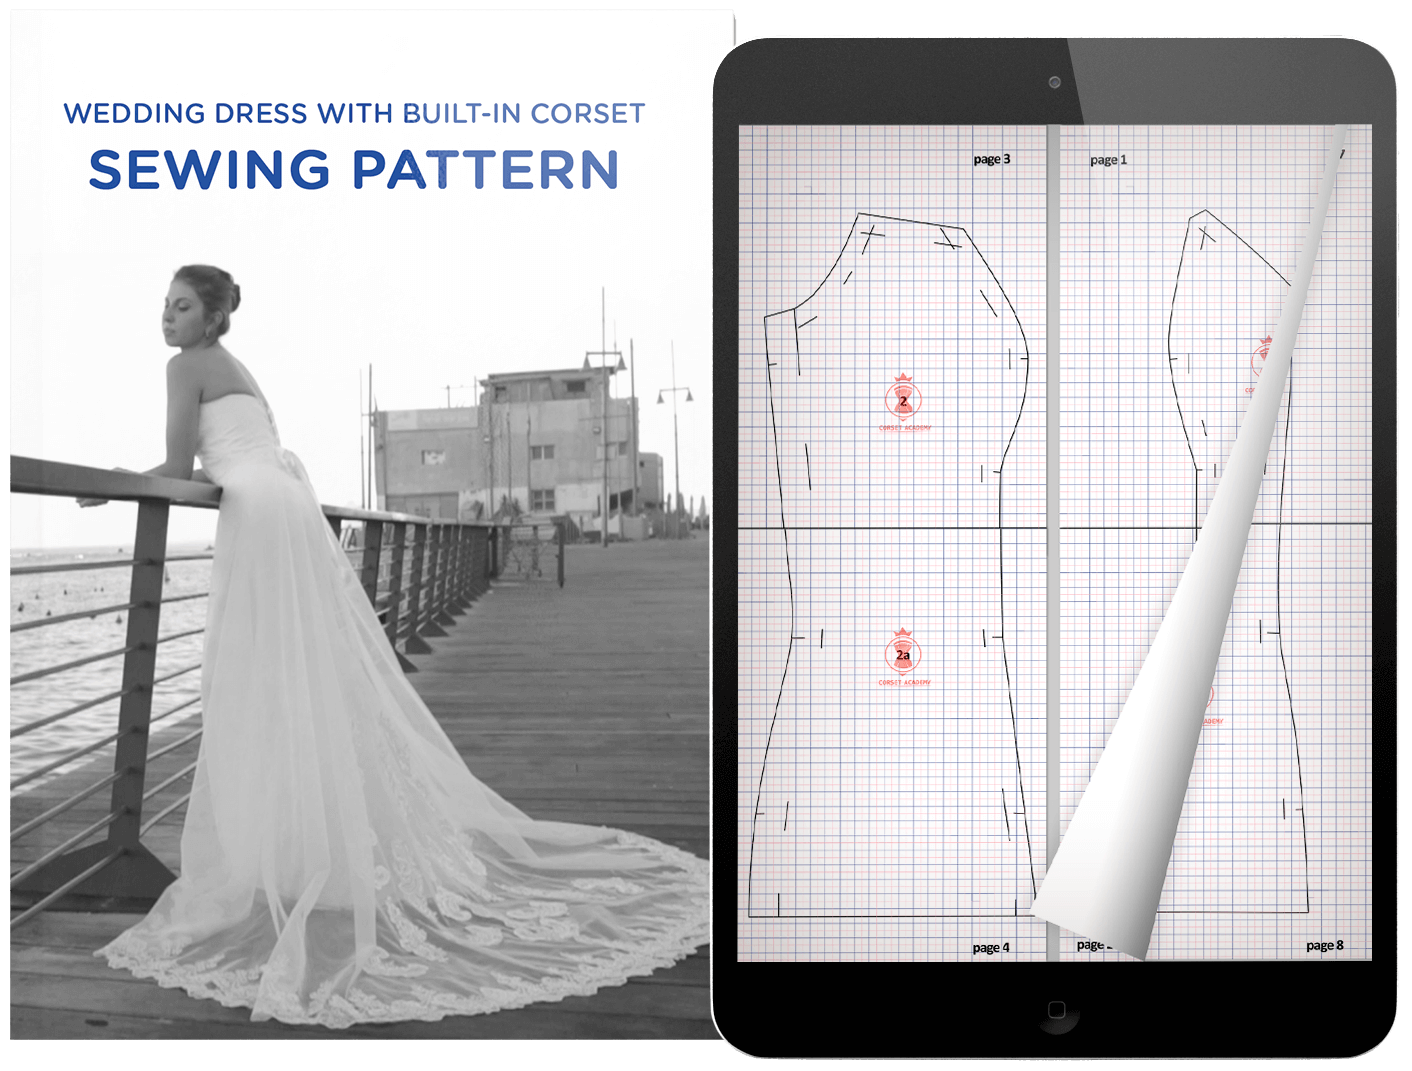 Book Just In 1 Day Wedding Dress Sewing Patterns Dress Sewing Patterns Free Sewing Wedding Dress